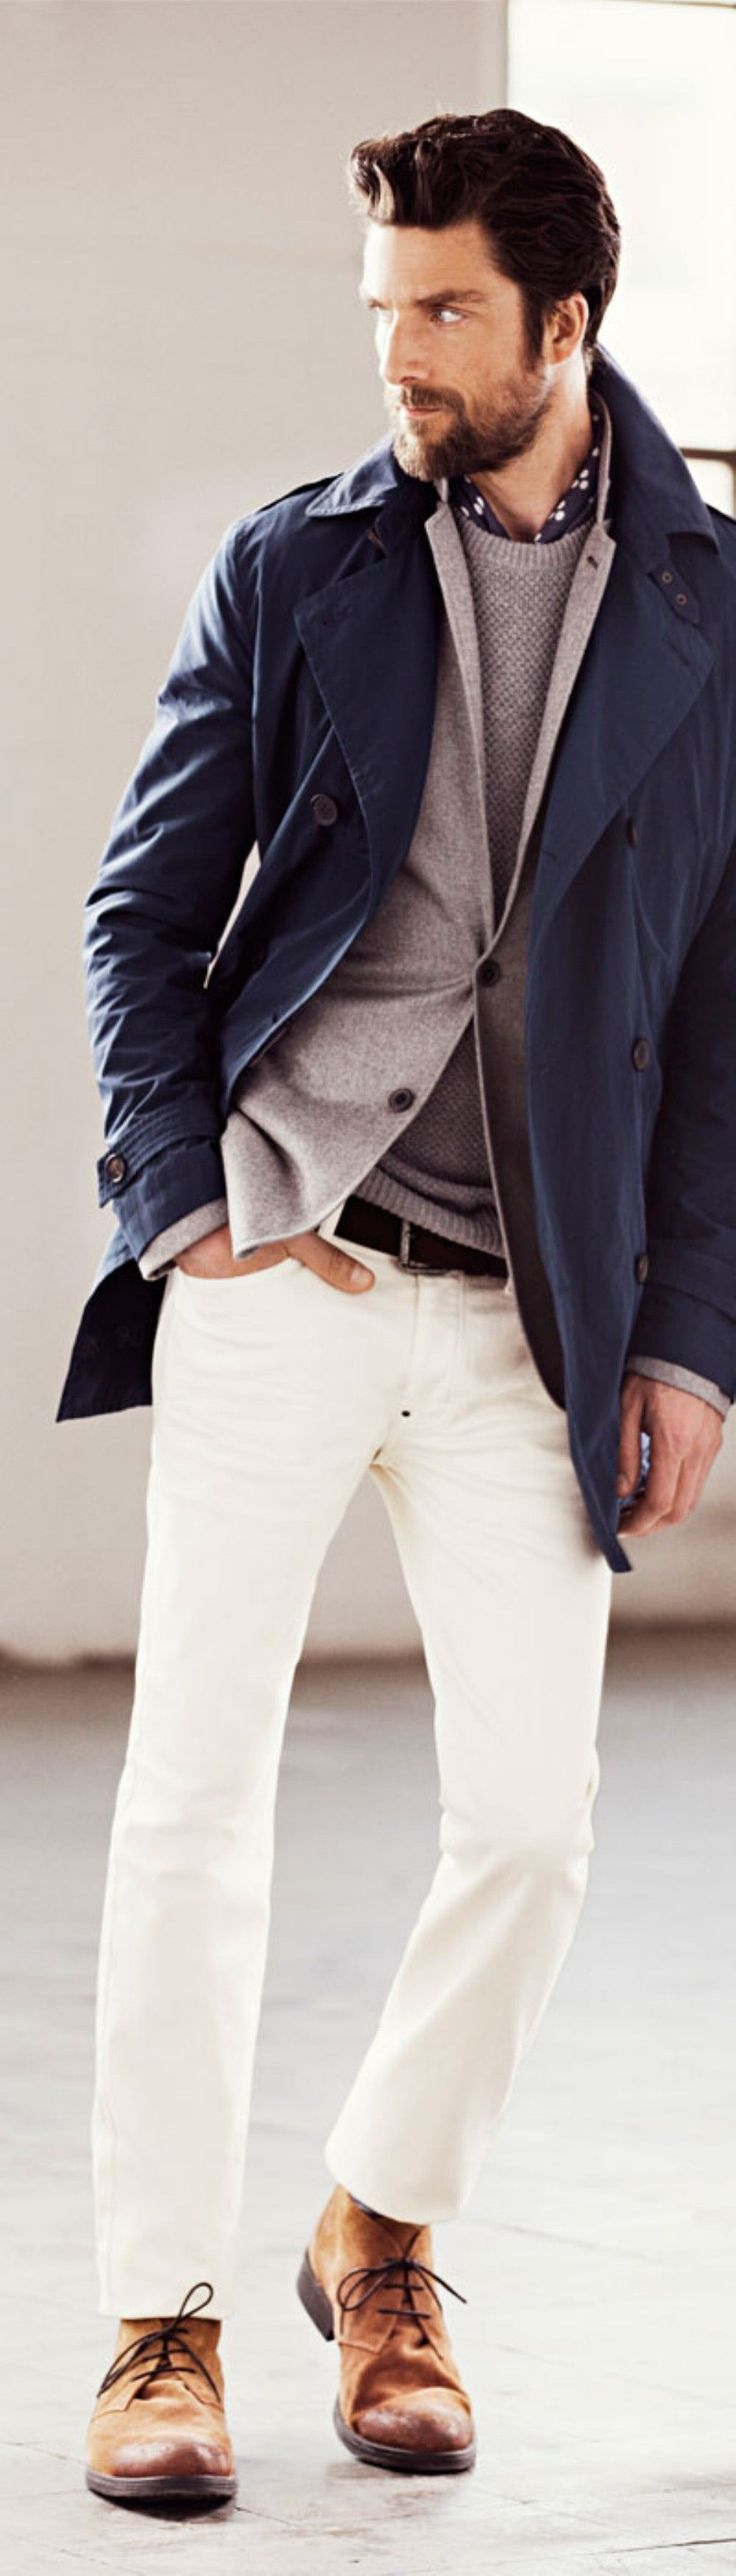 Breathtaking 23 Cool Spring White Jeans Outfits For Men from https://www.fashionetter.com/2017/04/12/cool-spring-white-jeans-outfits-men/